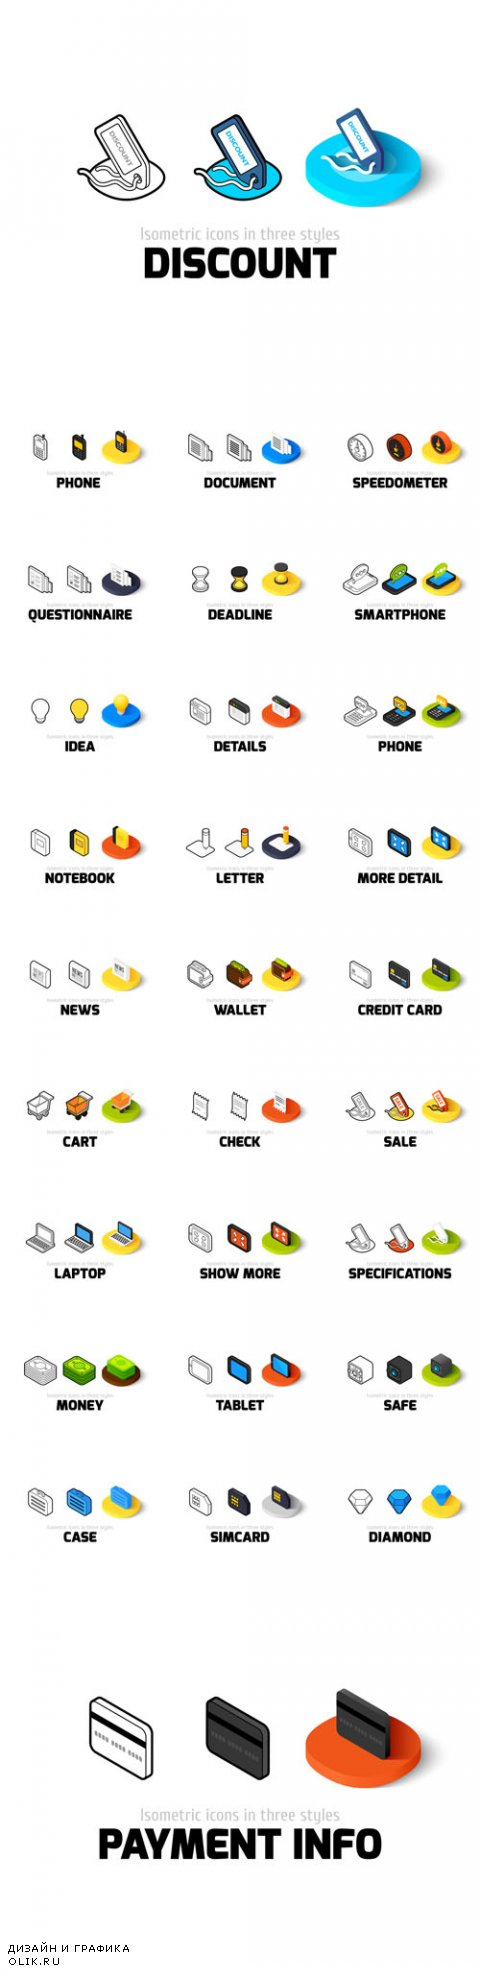 Vector 3D Icons in Different Style 1